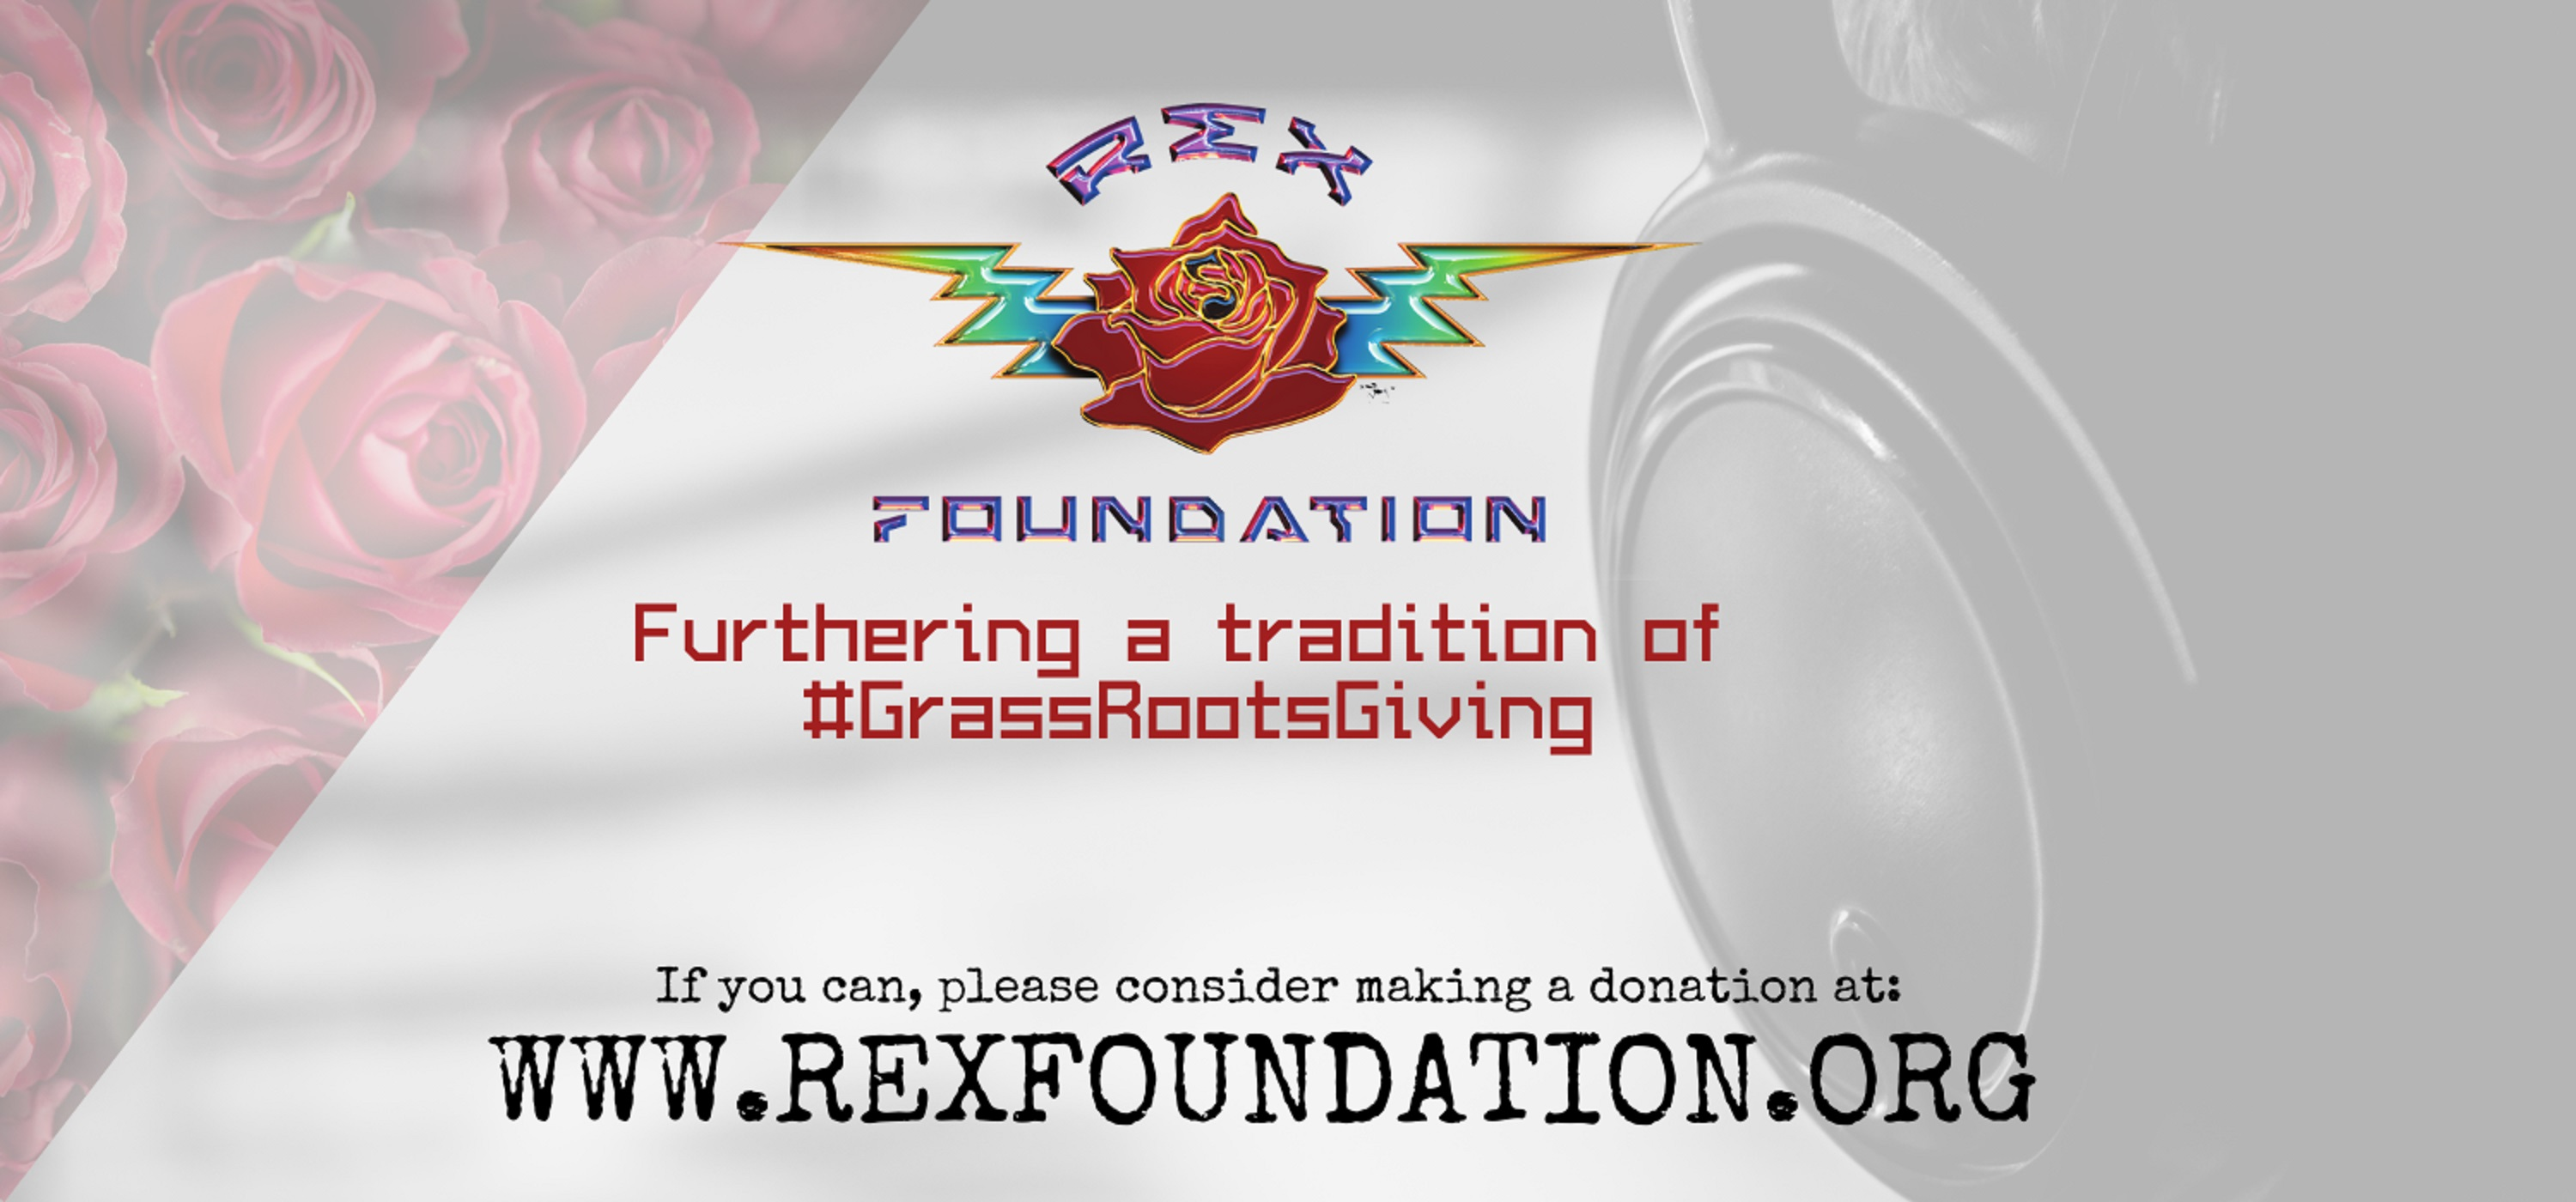 The Rex Foundation Keeps on Truckin'